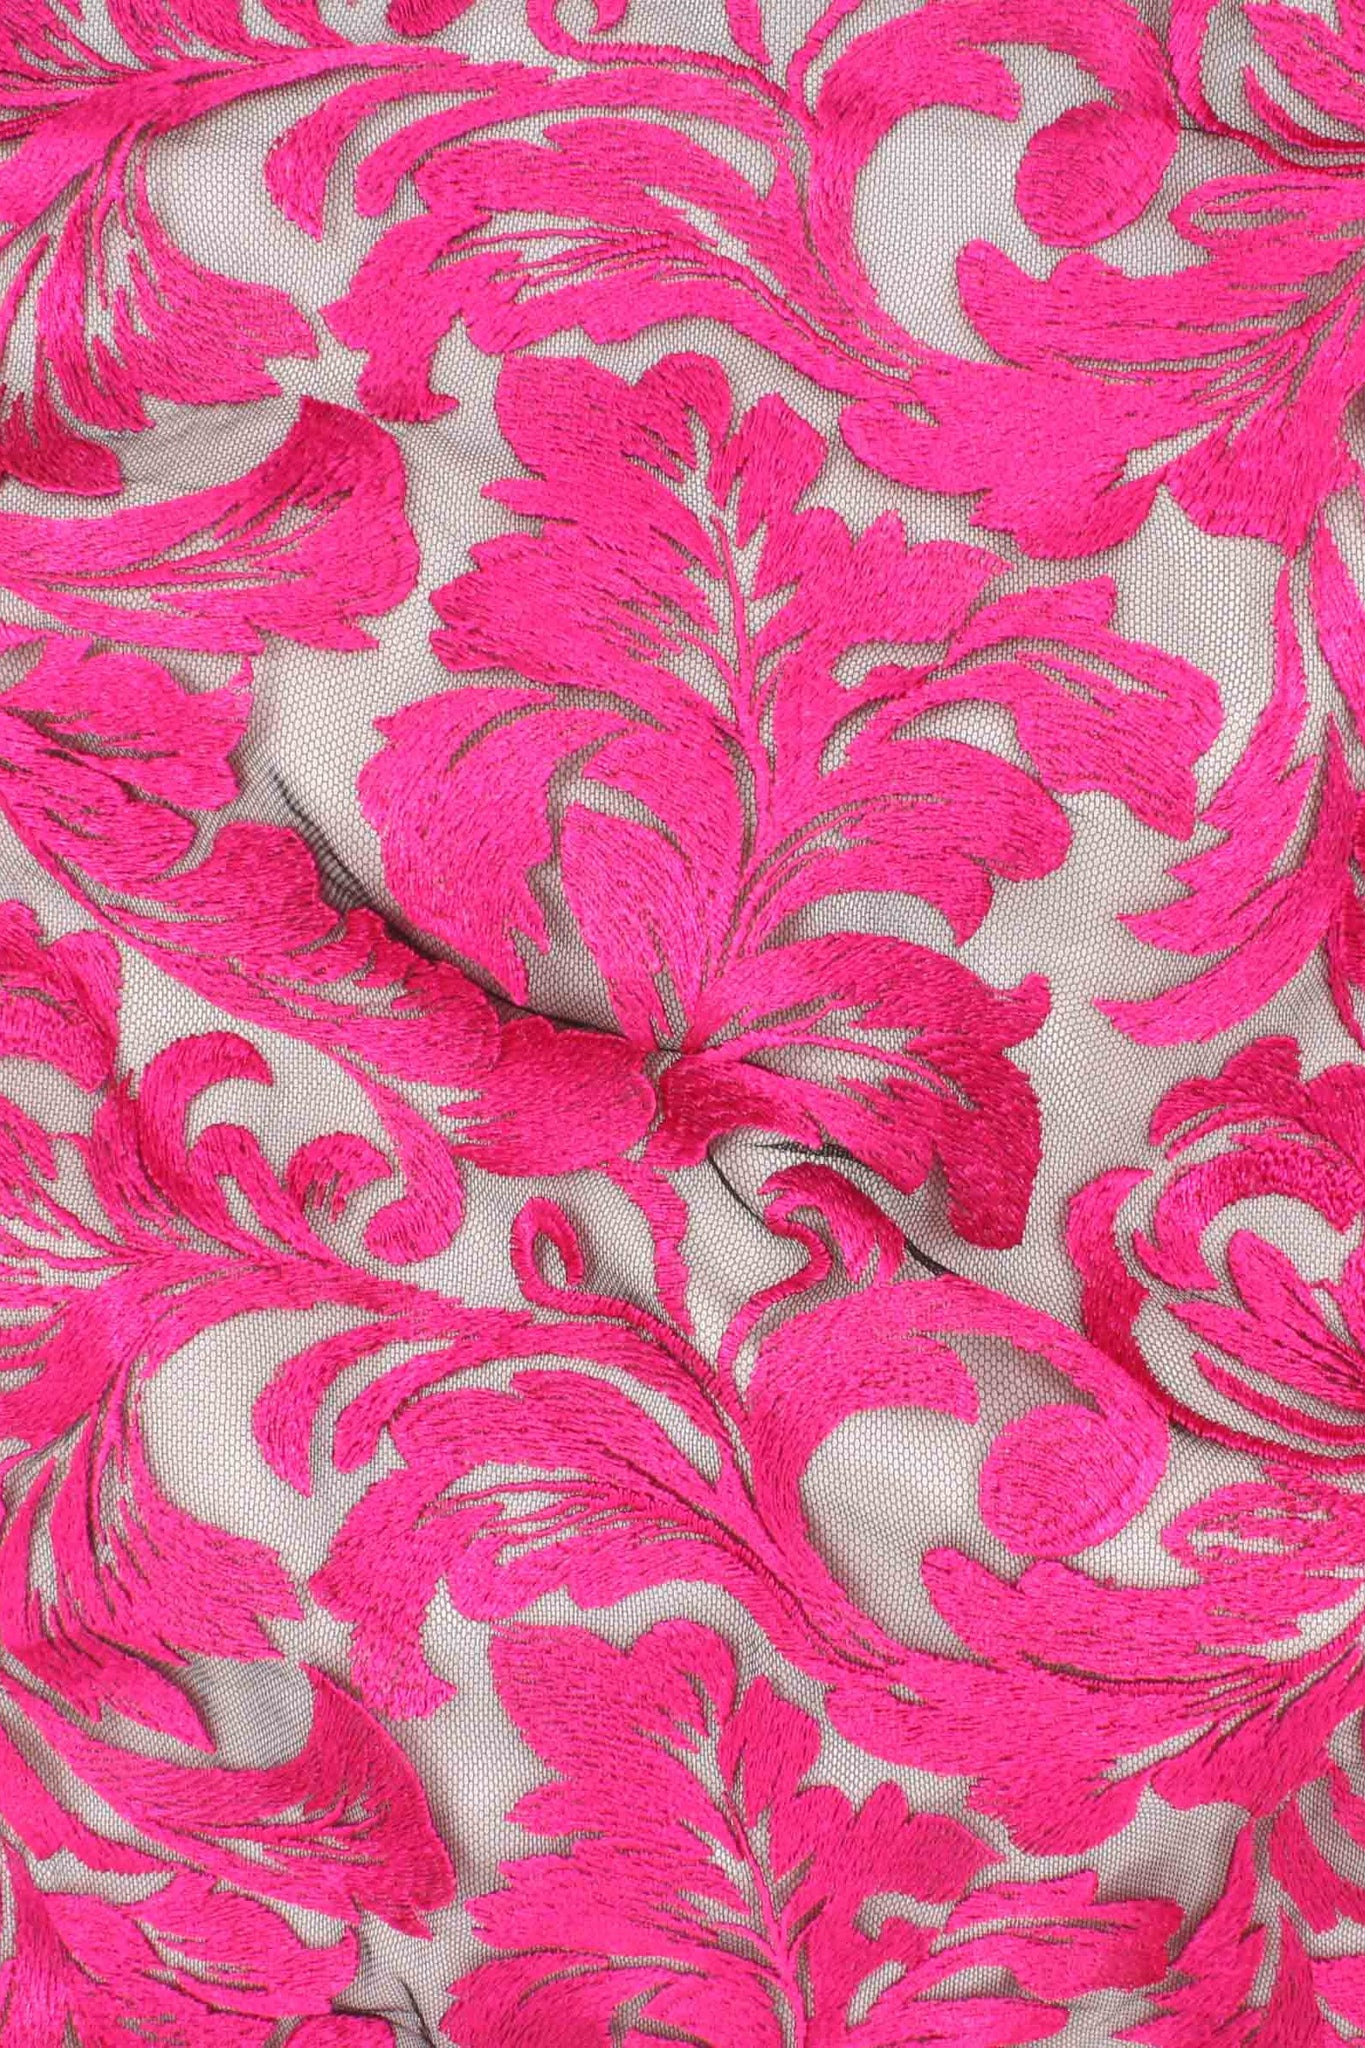 Damask Lace Black / Fuchsia